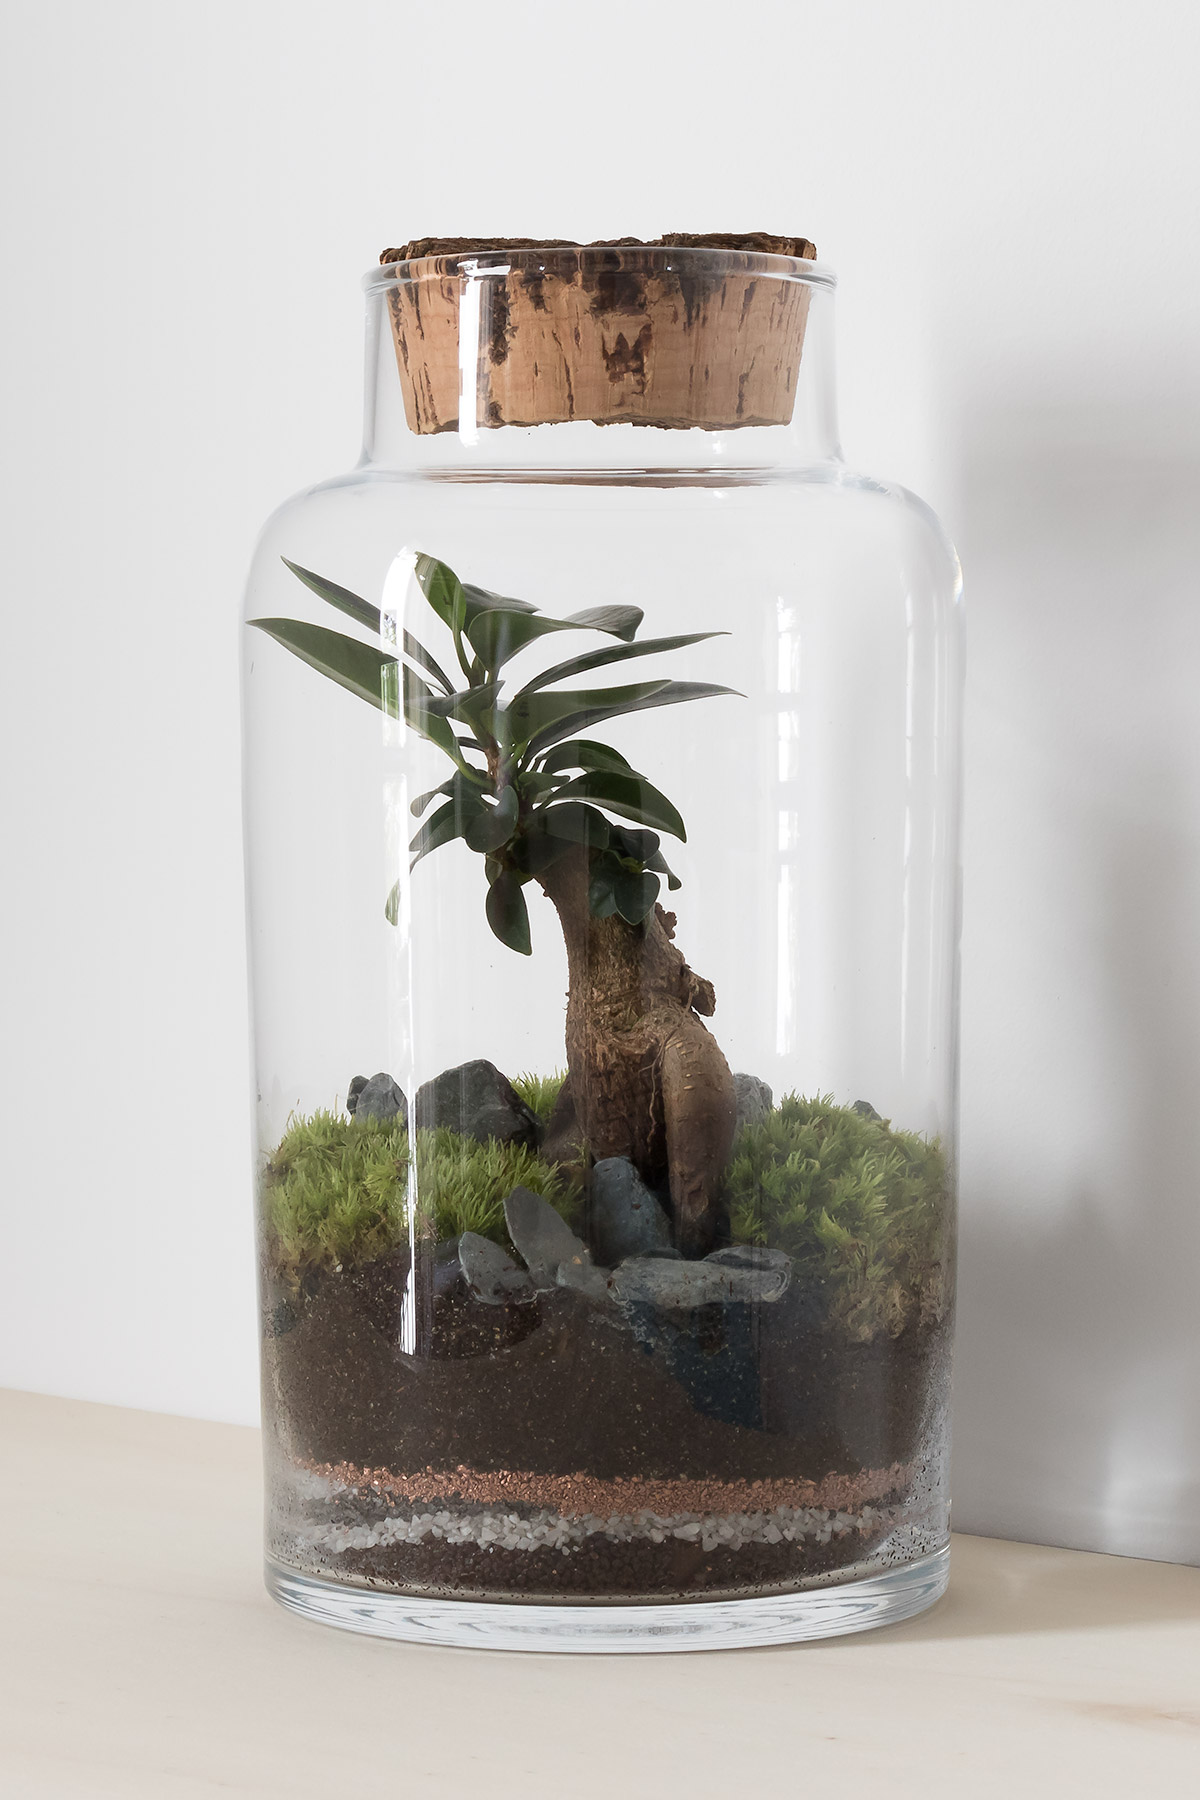 Cylindrical glass terrarium with bonsai ficus tree, gravel and moss garden with cork stopper